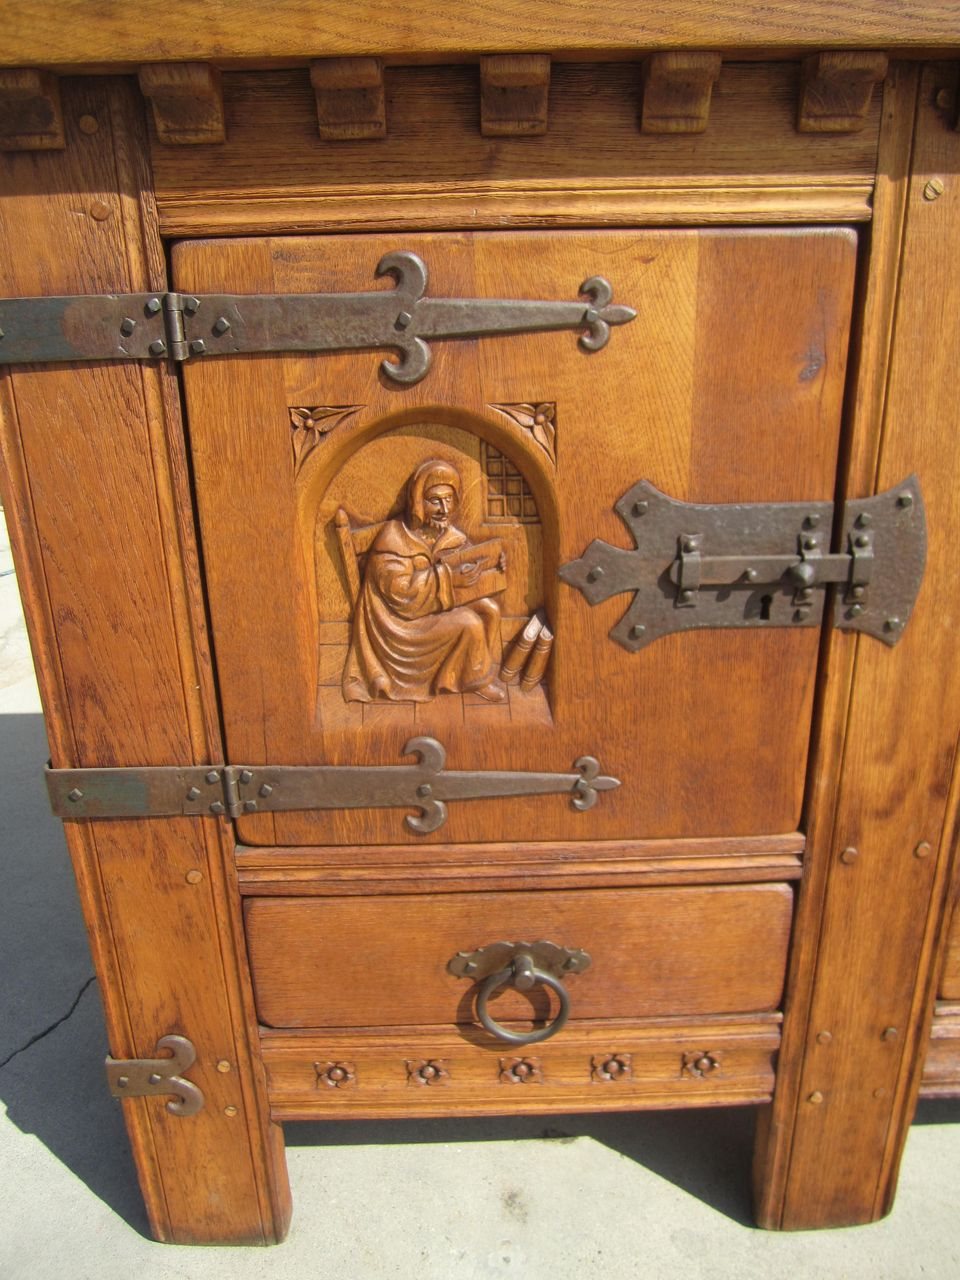 French Antique Rustic Sideboard Cabinet With Iron Accents Antique From